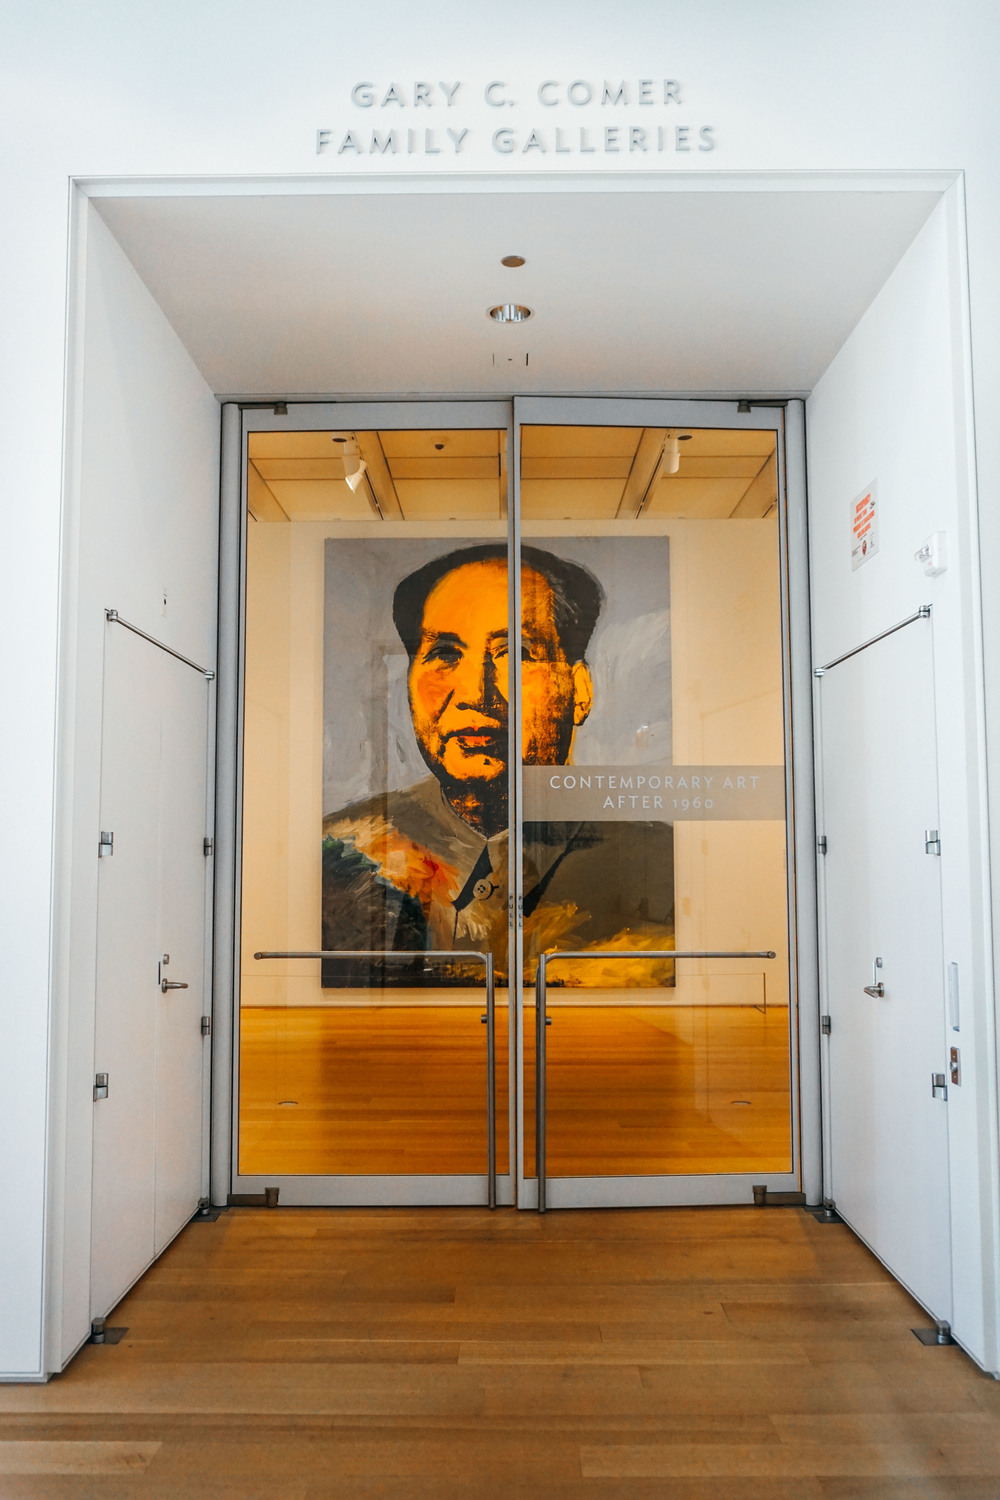 Art Institute of Chicago, Millennium Park. United States of America. Mao